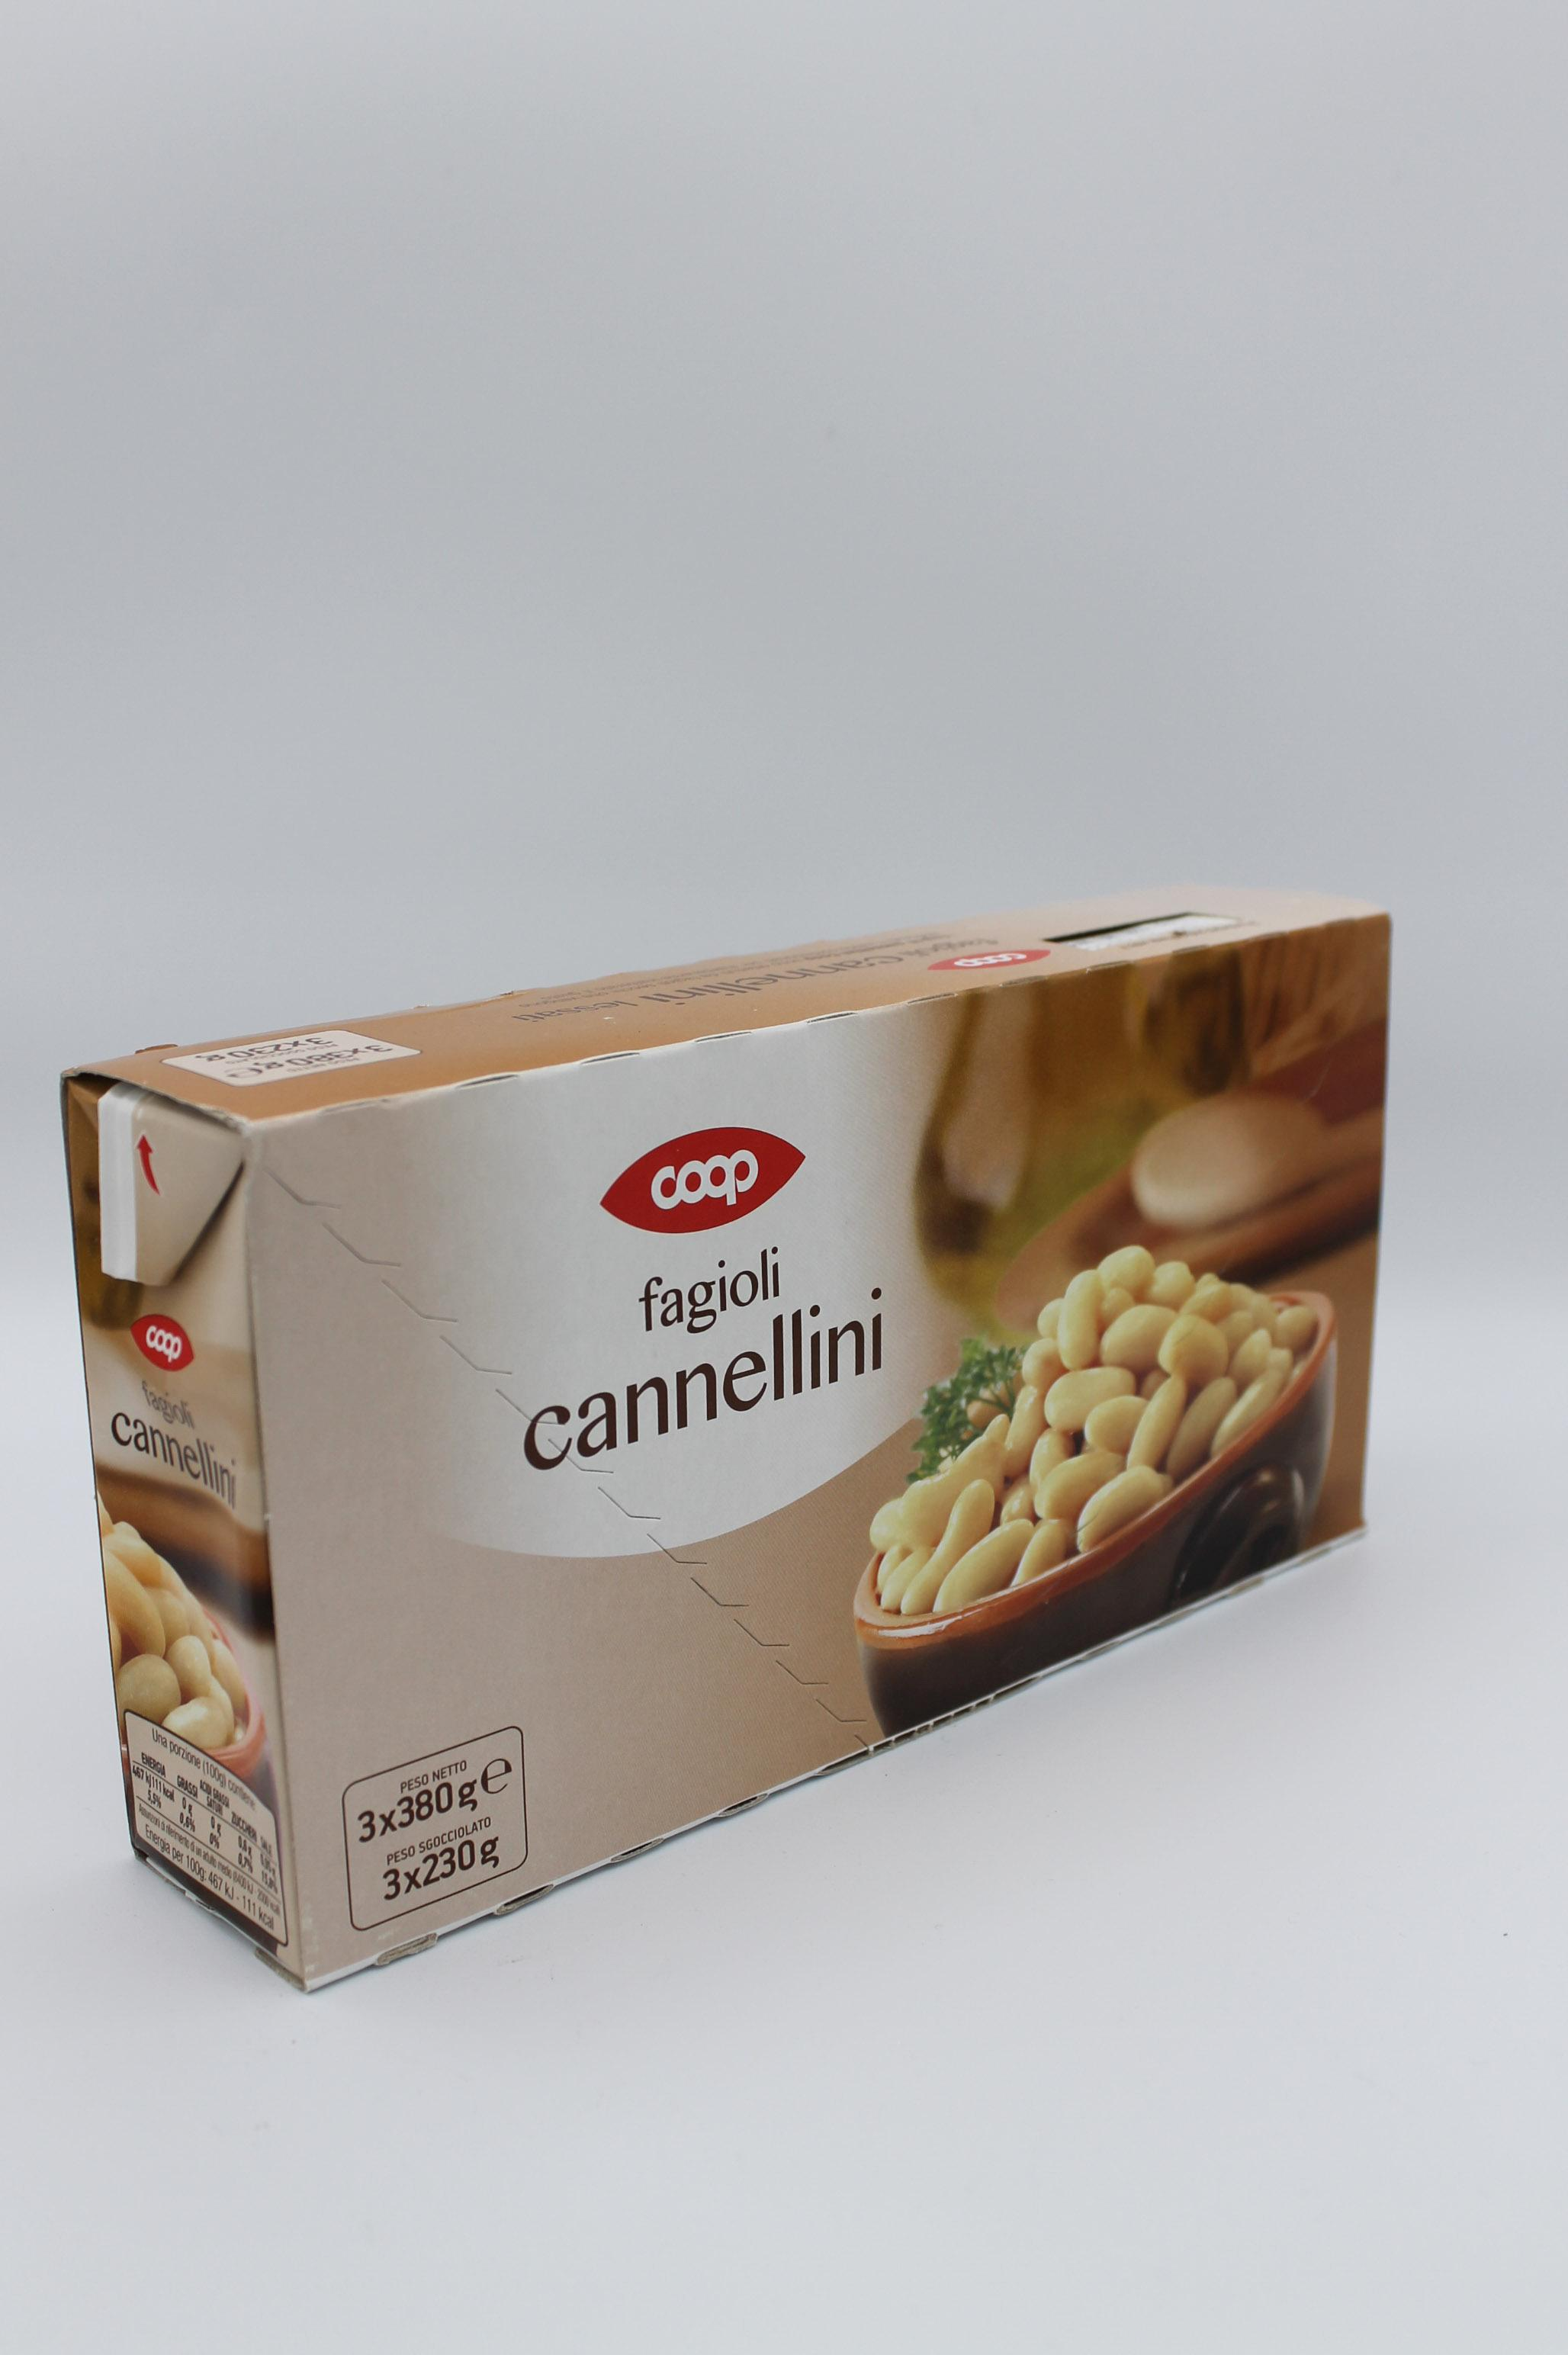 Coop cannellini 3x230 gr.